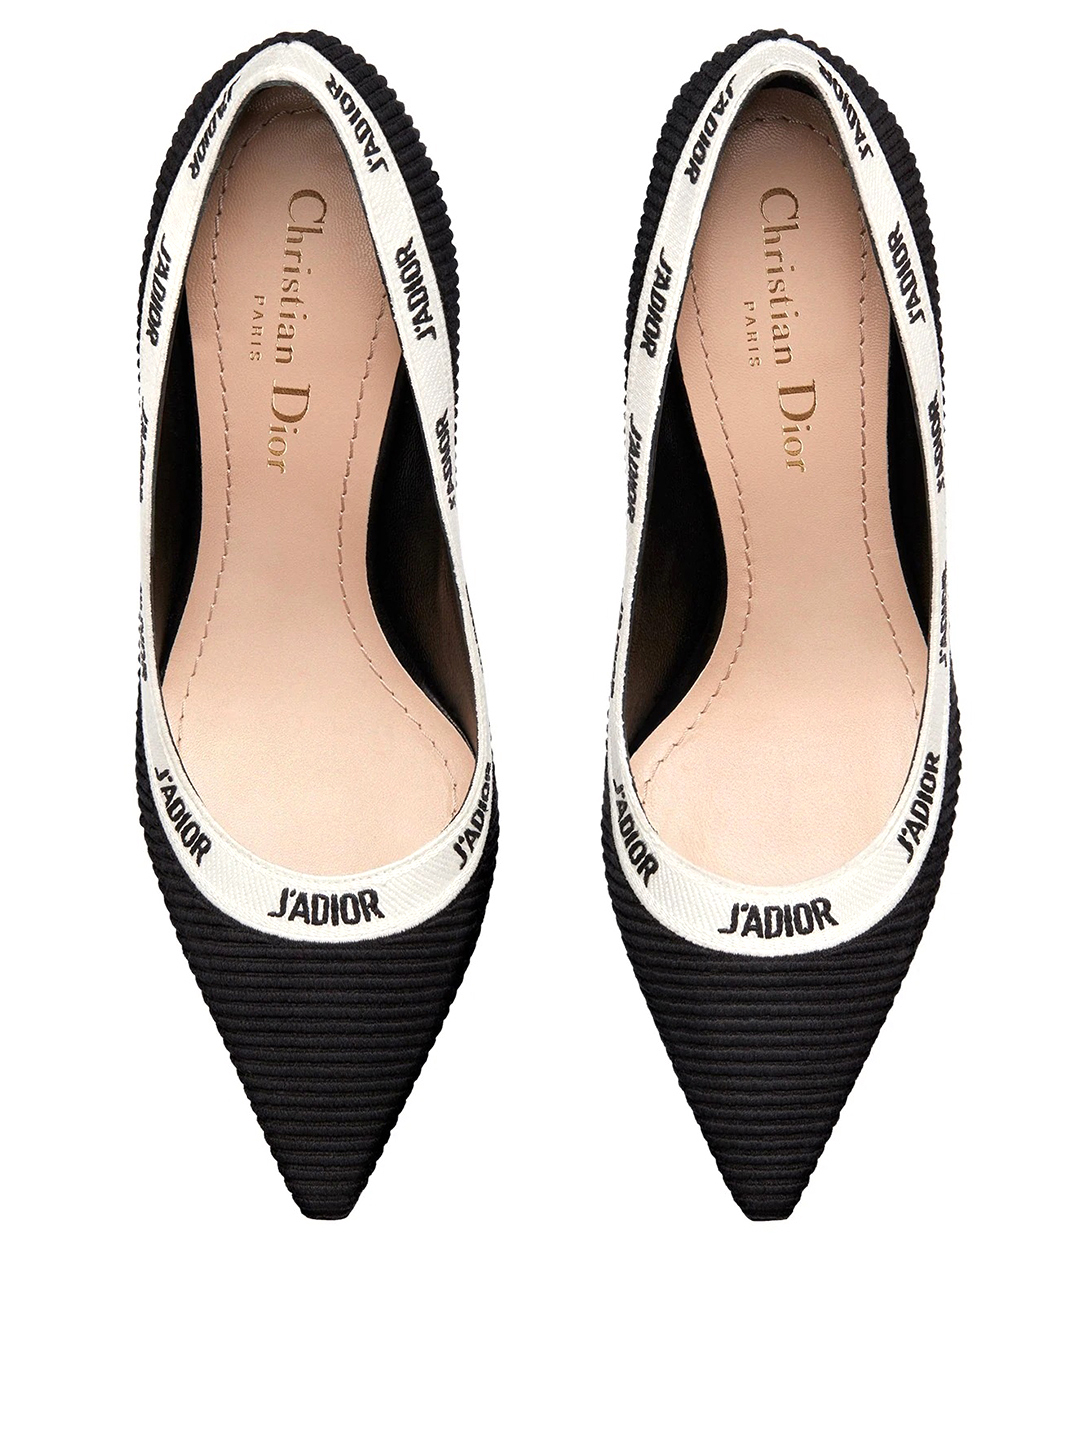 DIOR J'Adior Technical Fabric Pumps Women's Black